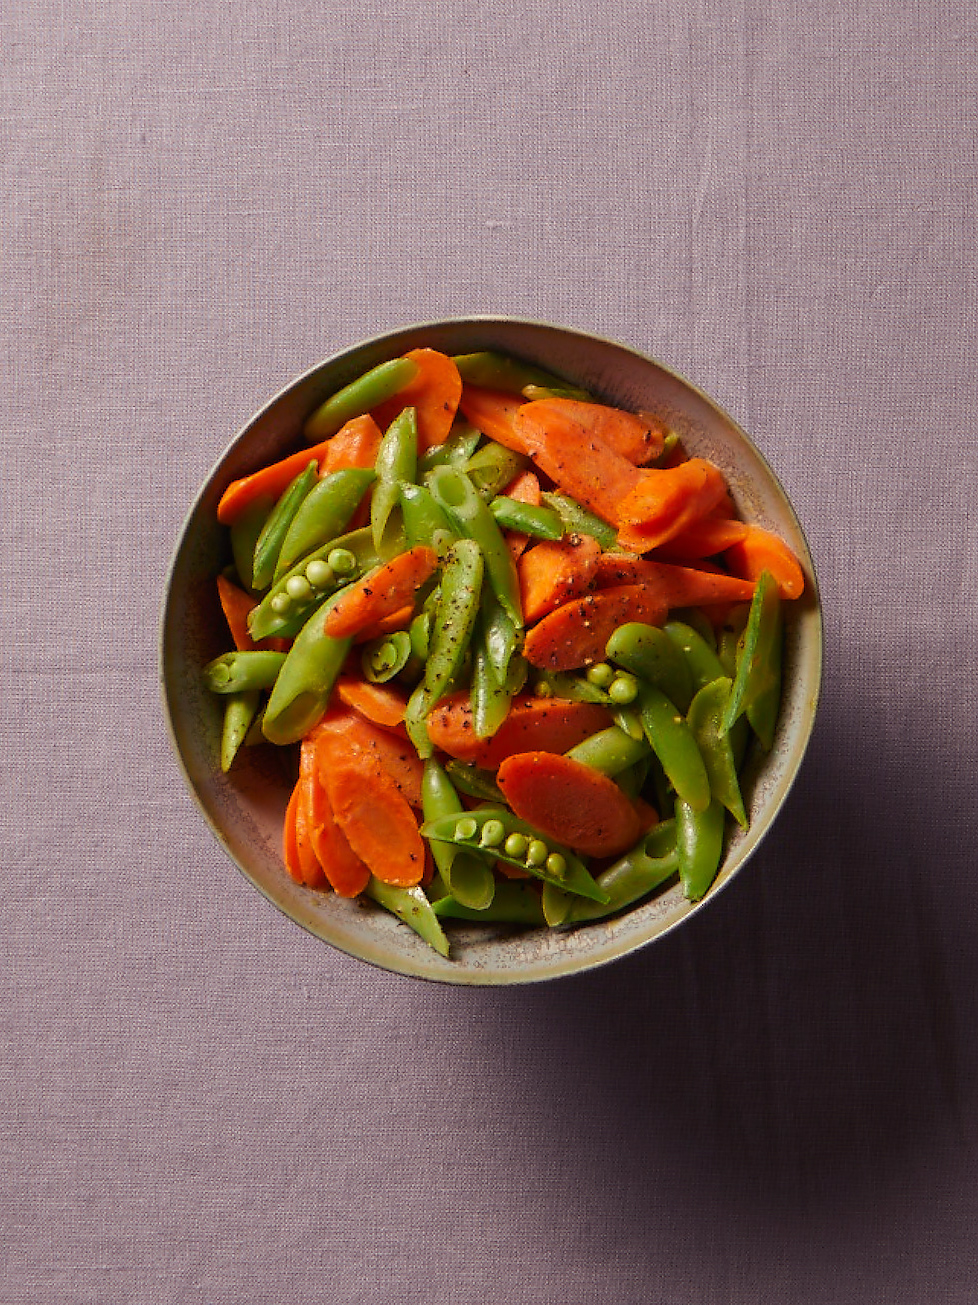 Quick Carrots and Snap Peas with Lemony Mustard Dressing